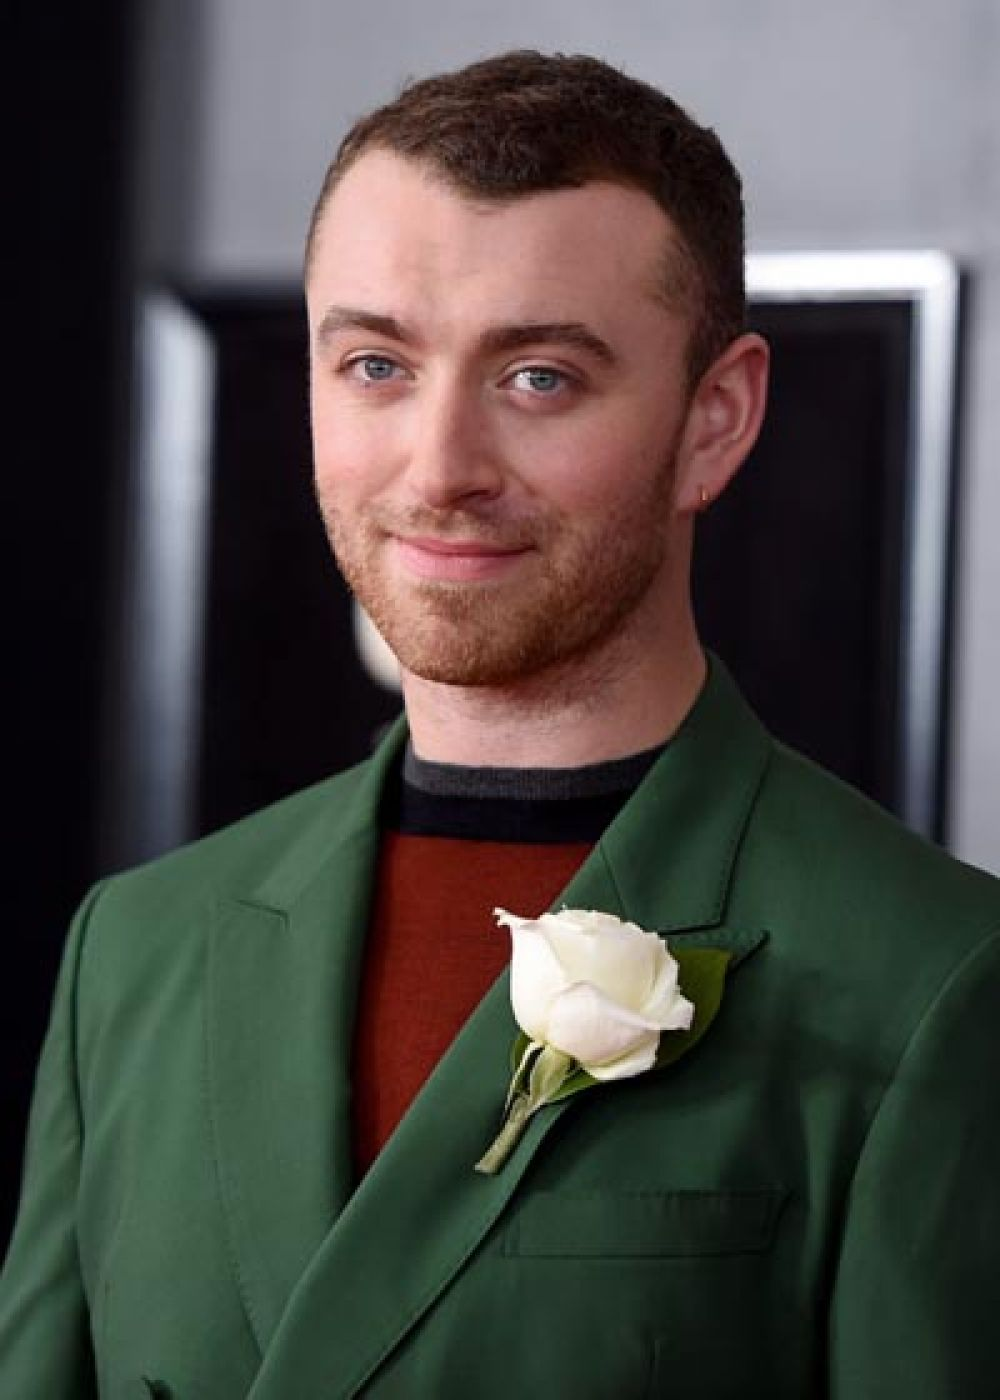 Sam Smith en el Grammy 2018